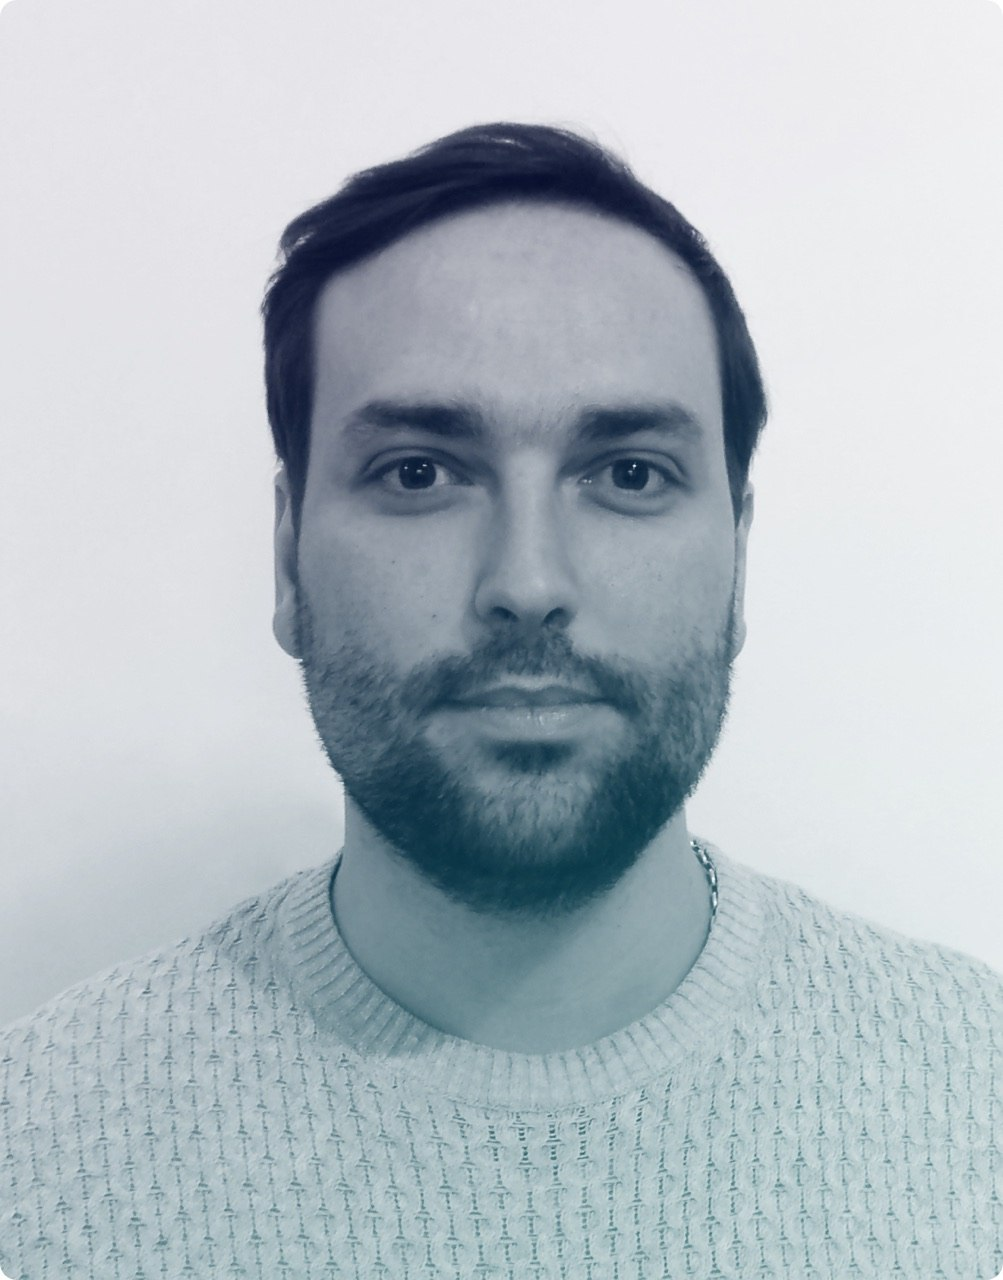 Romain Bury  CFO  Romain has a 4 year experience as a digital strategy consultant, advising investment funds and some of the largest French companies in their strategies and acquisitions. He graduated from one of the most prestigious engineering schools in France with a dual master's degree in economics and finance and innovation.